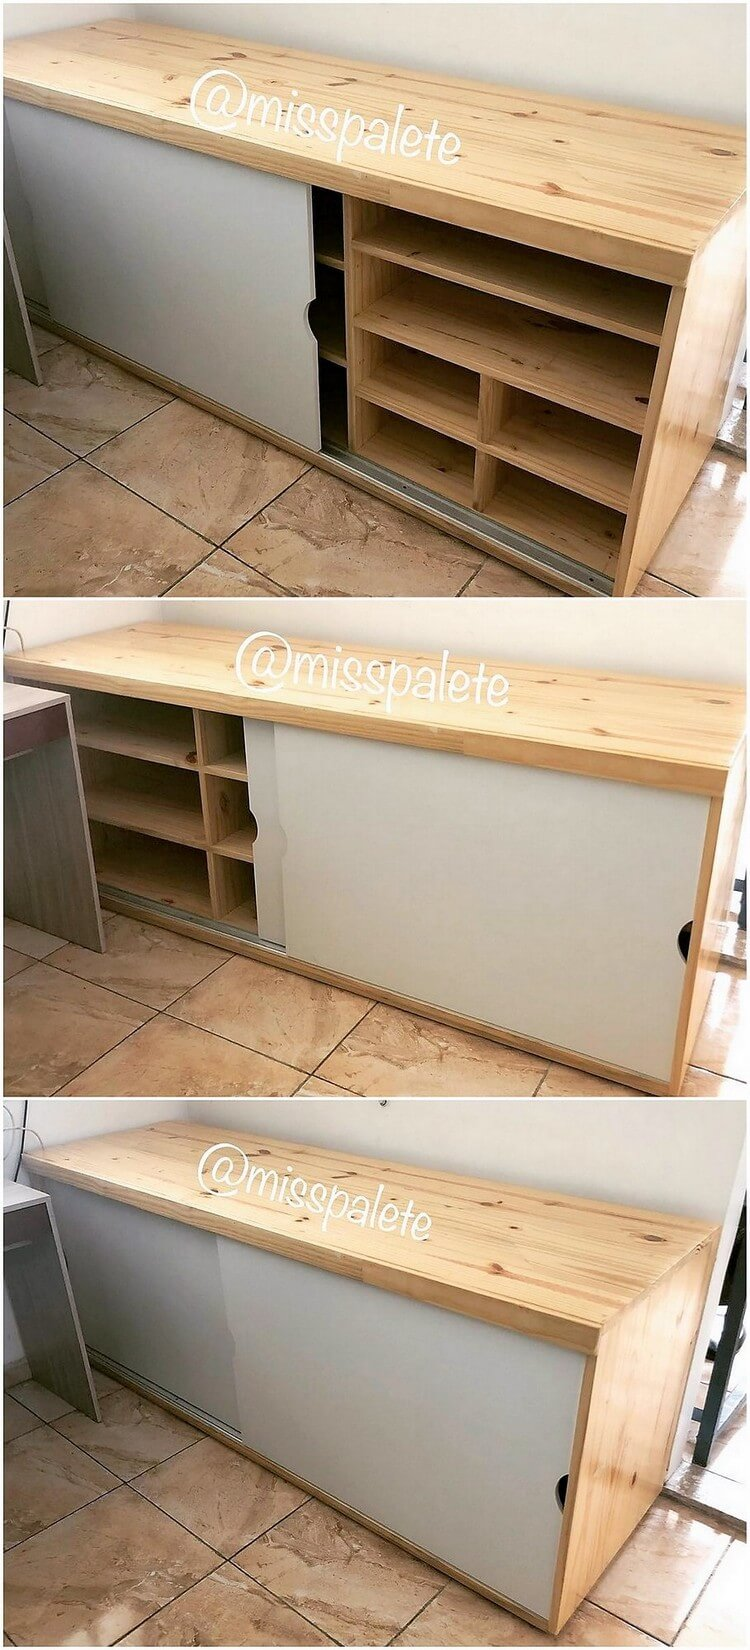 Pallet Shelving Cabinet with Sliding Doors